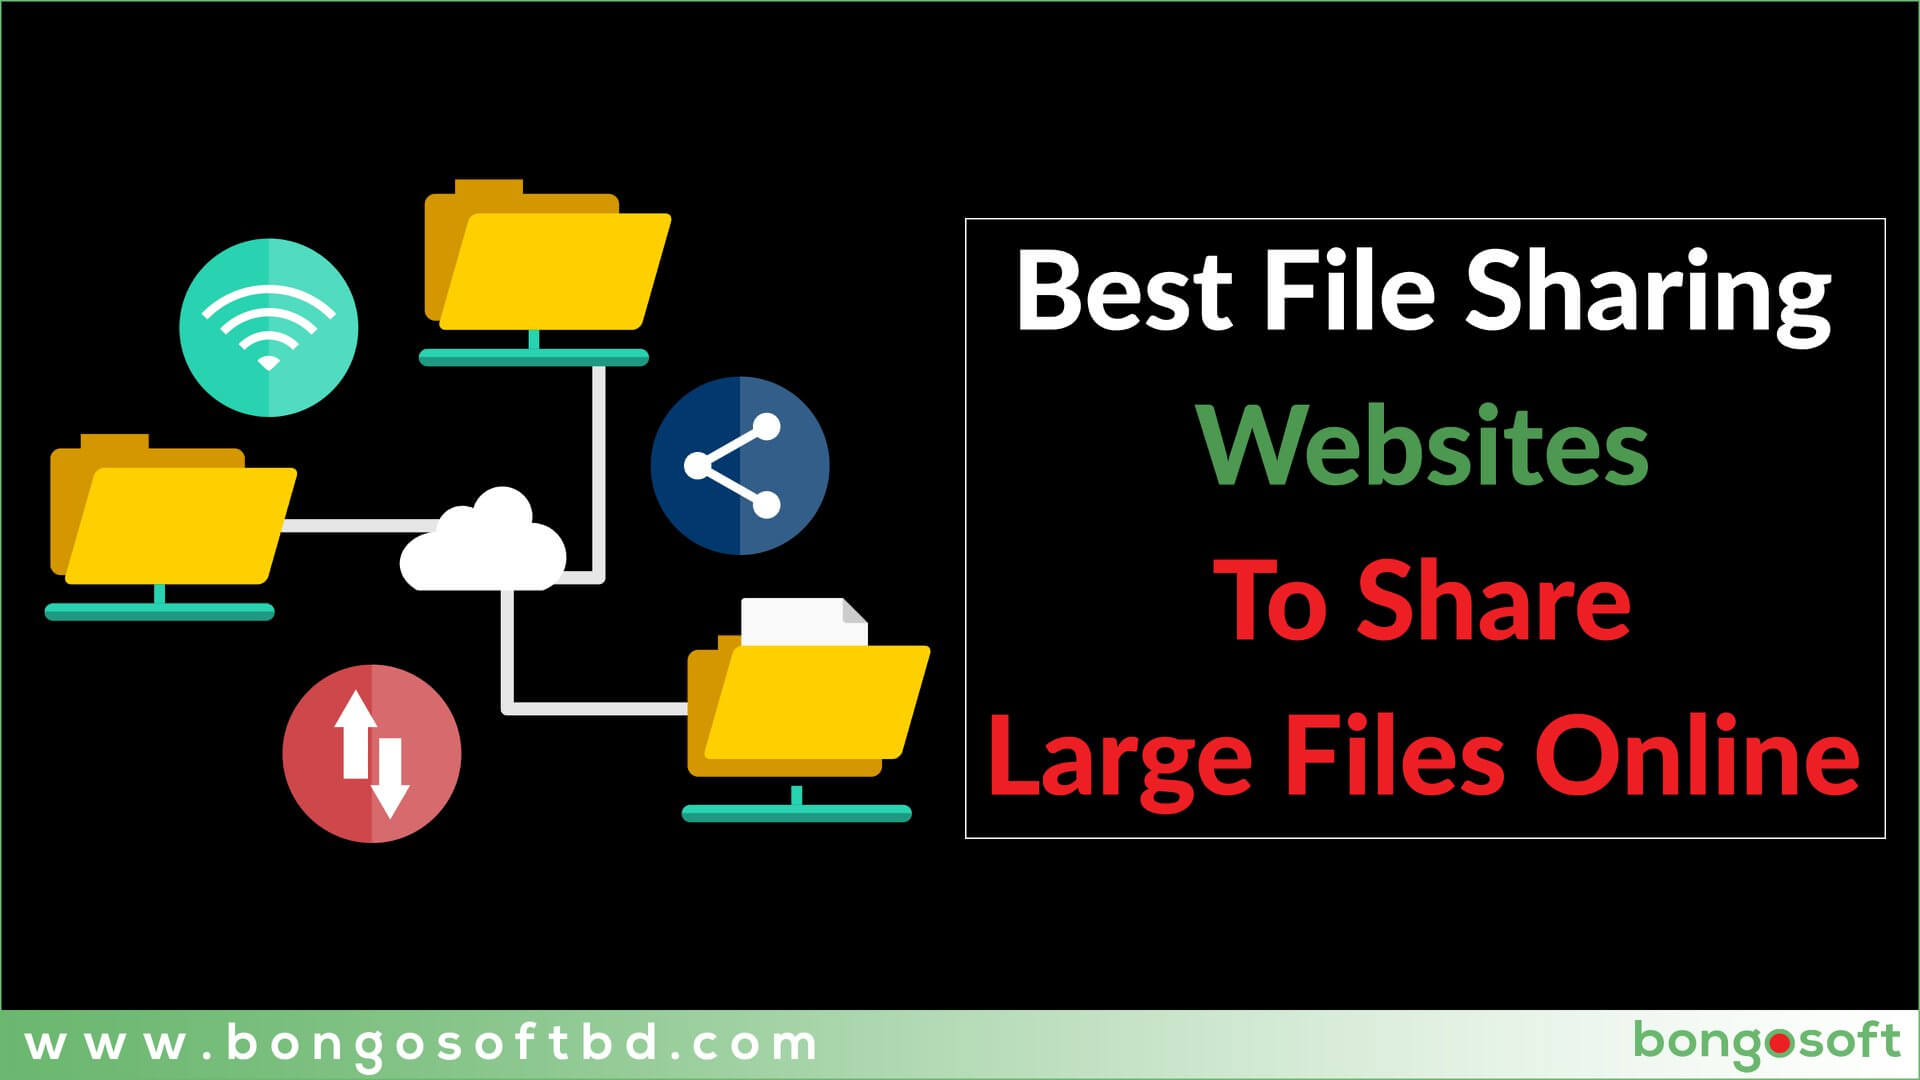 Share Websites Bongosoft Ltd Blog Details